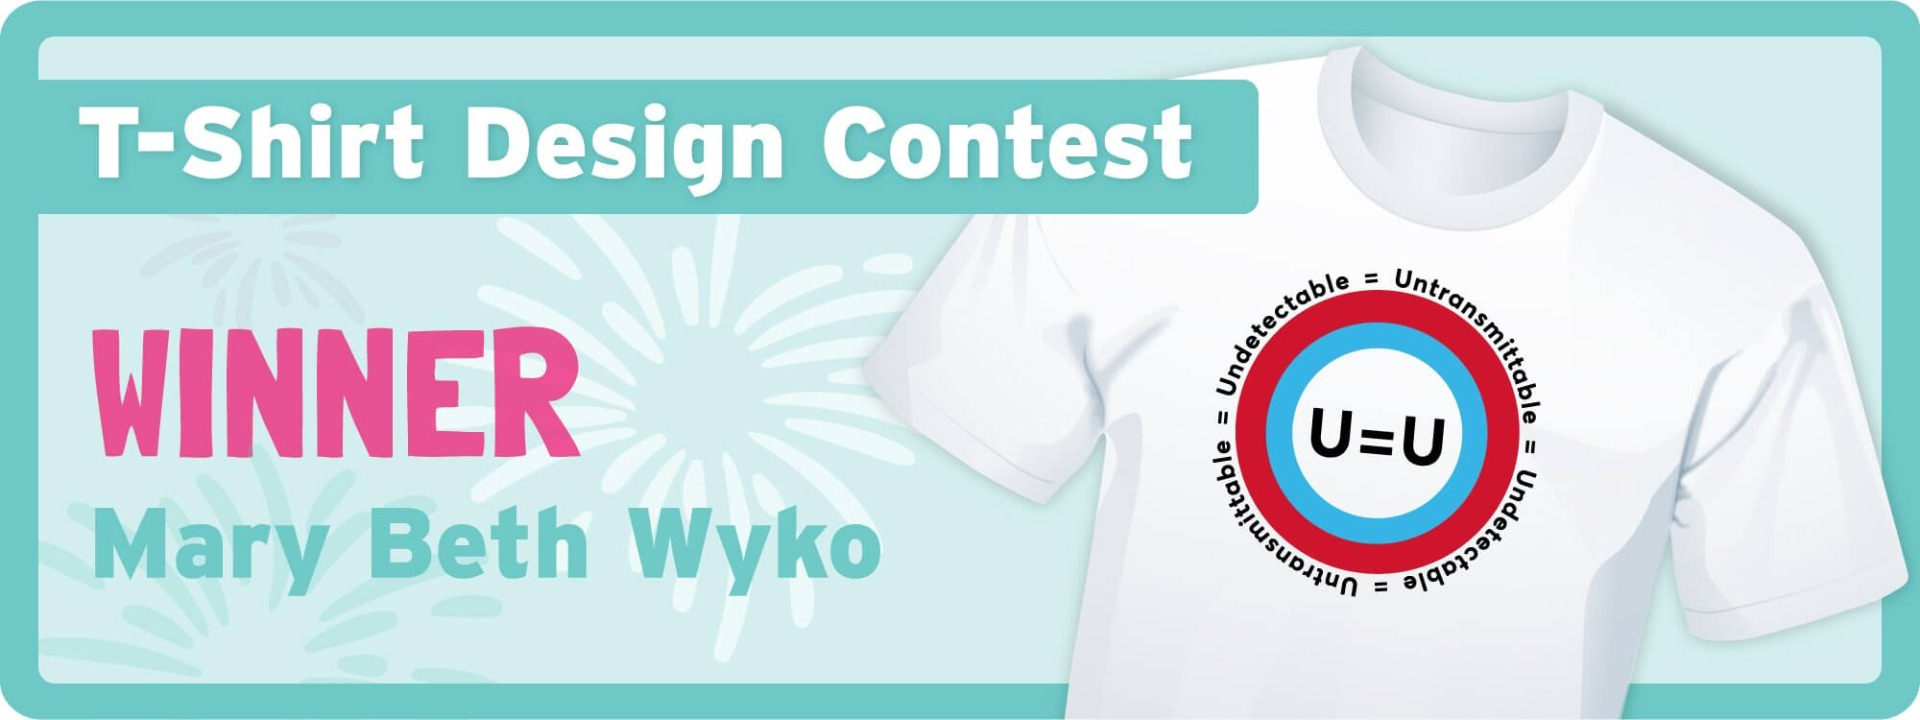 U=U T-Shirt Design Contest Banner